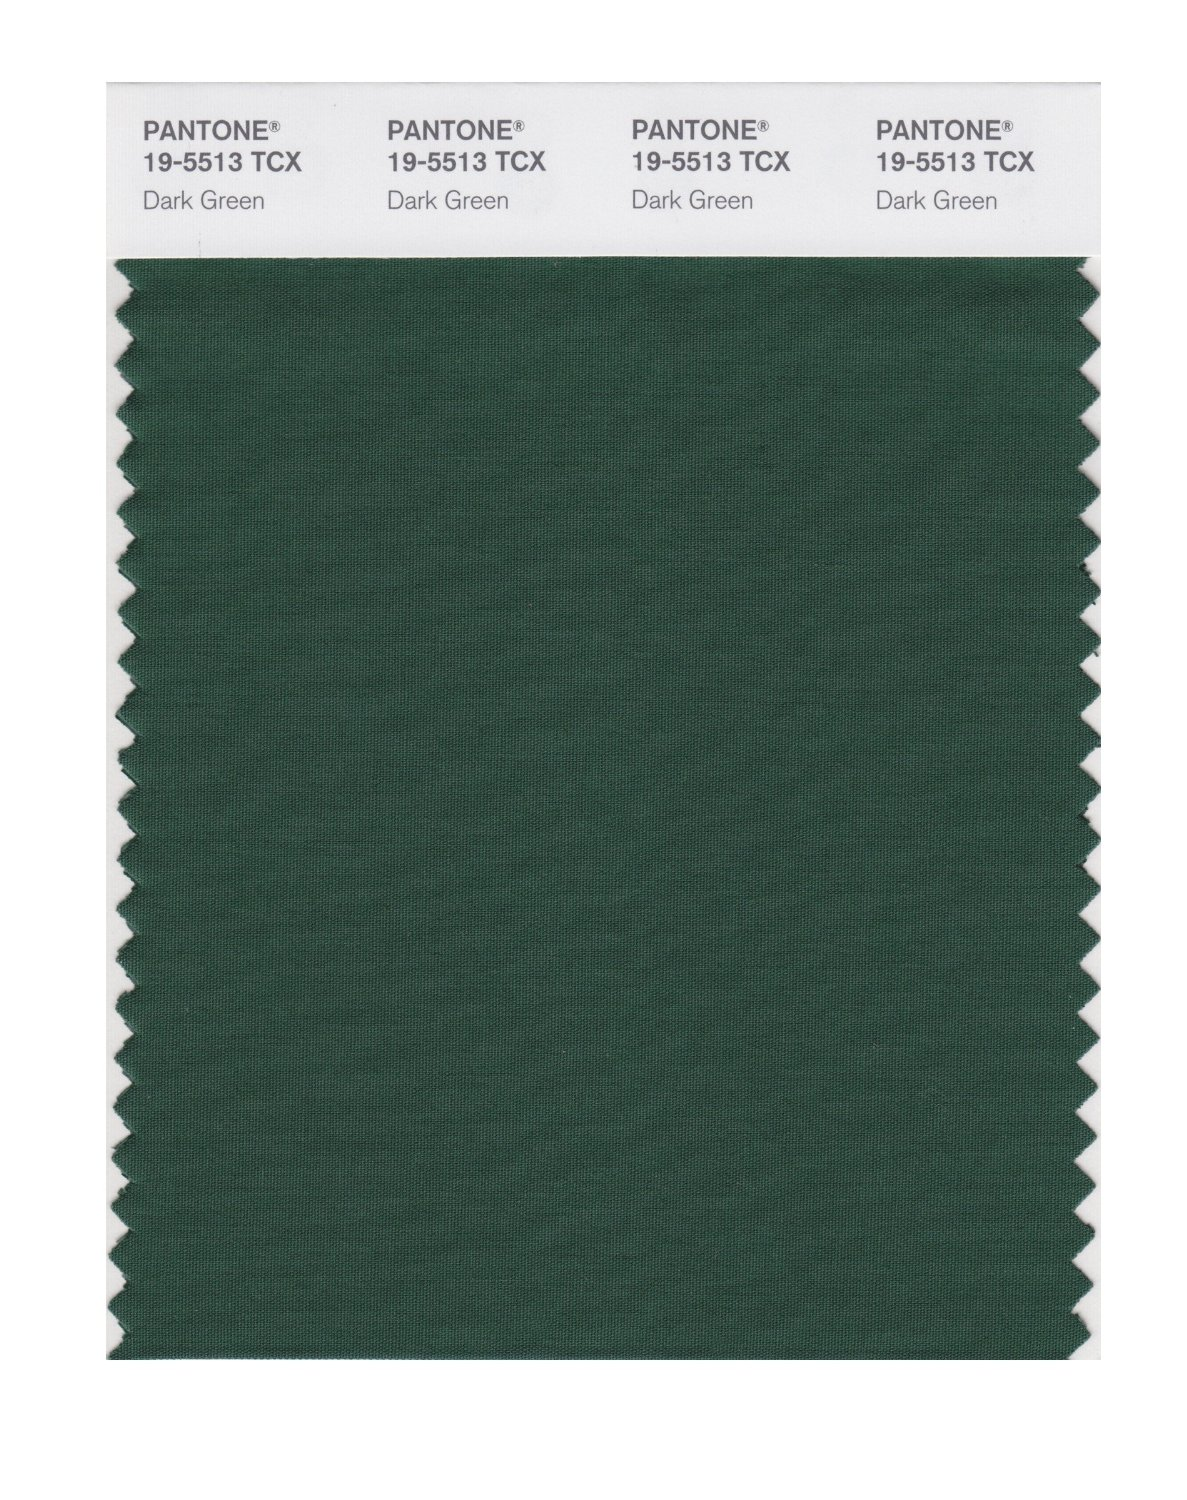 Pantone Smart Swatch 19-5513 Dark Green